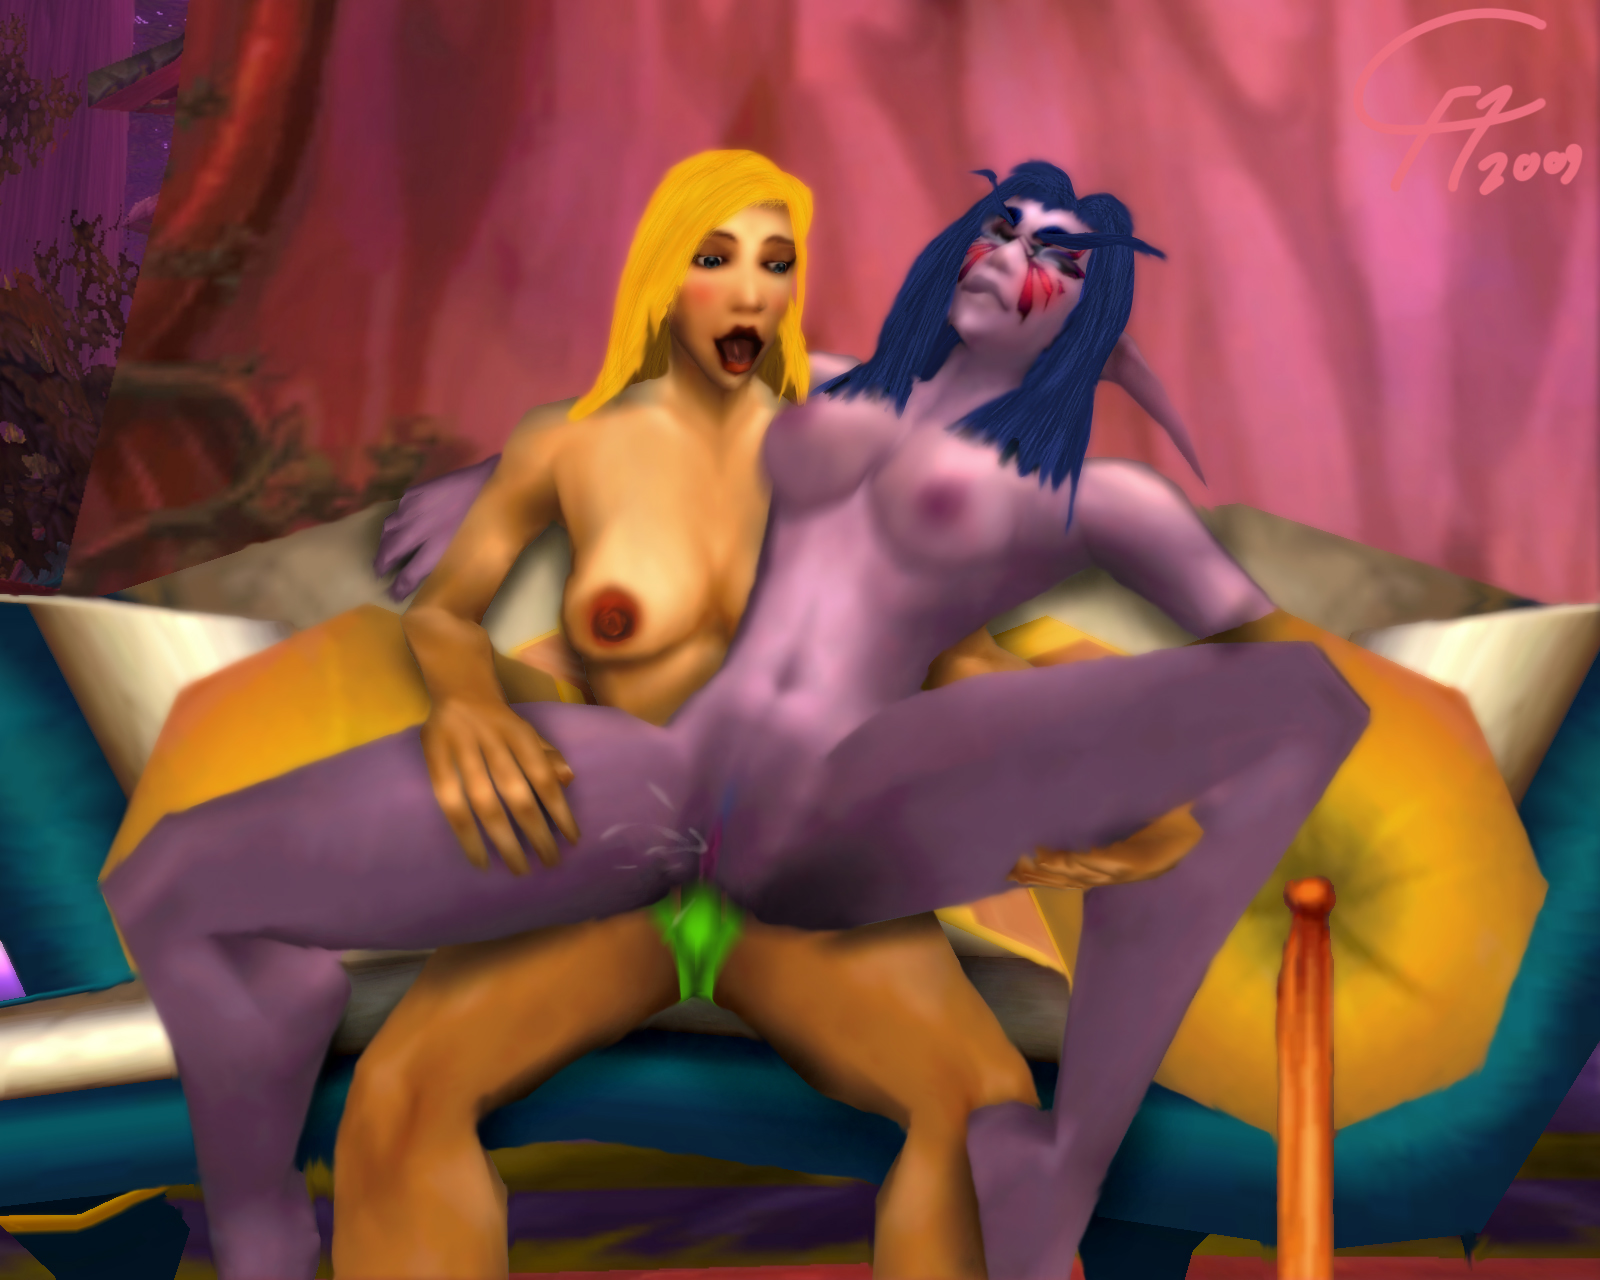 Wow human gets fucked by nelf adult movies